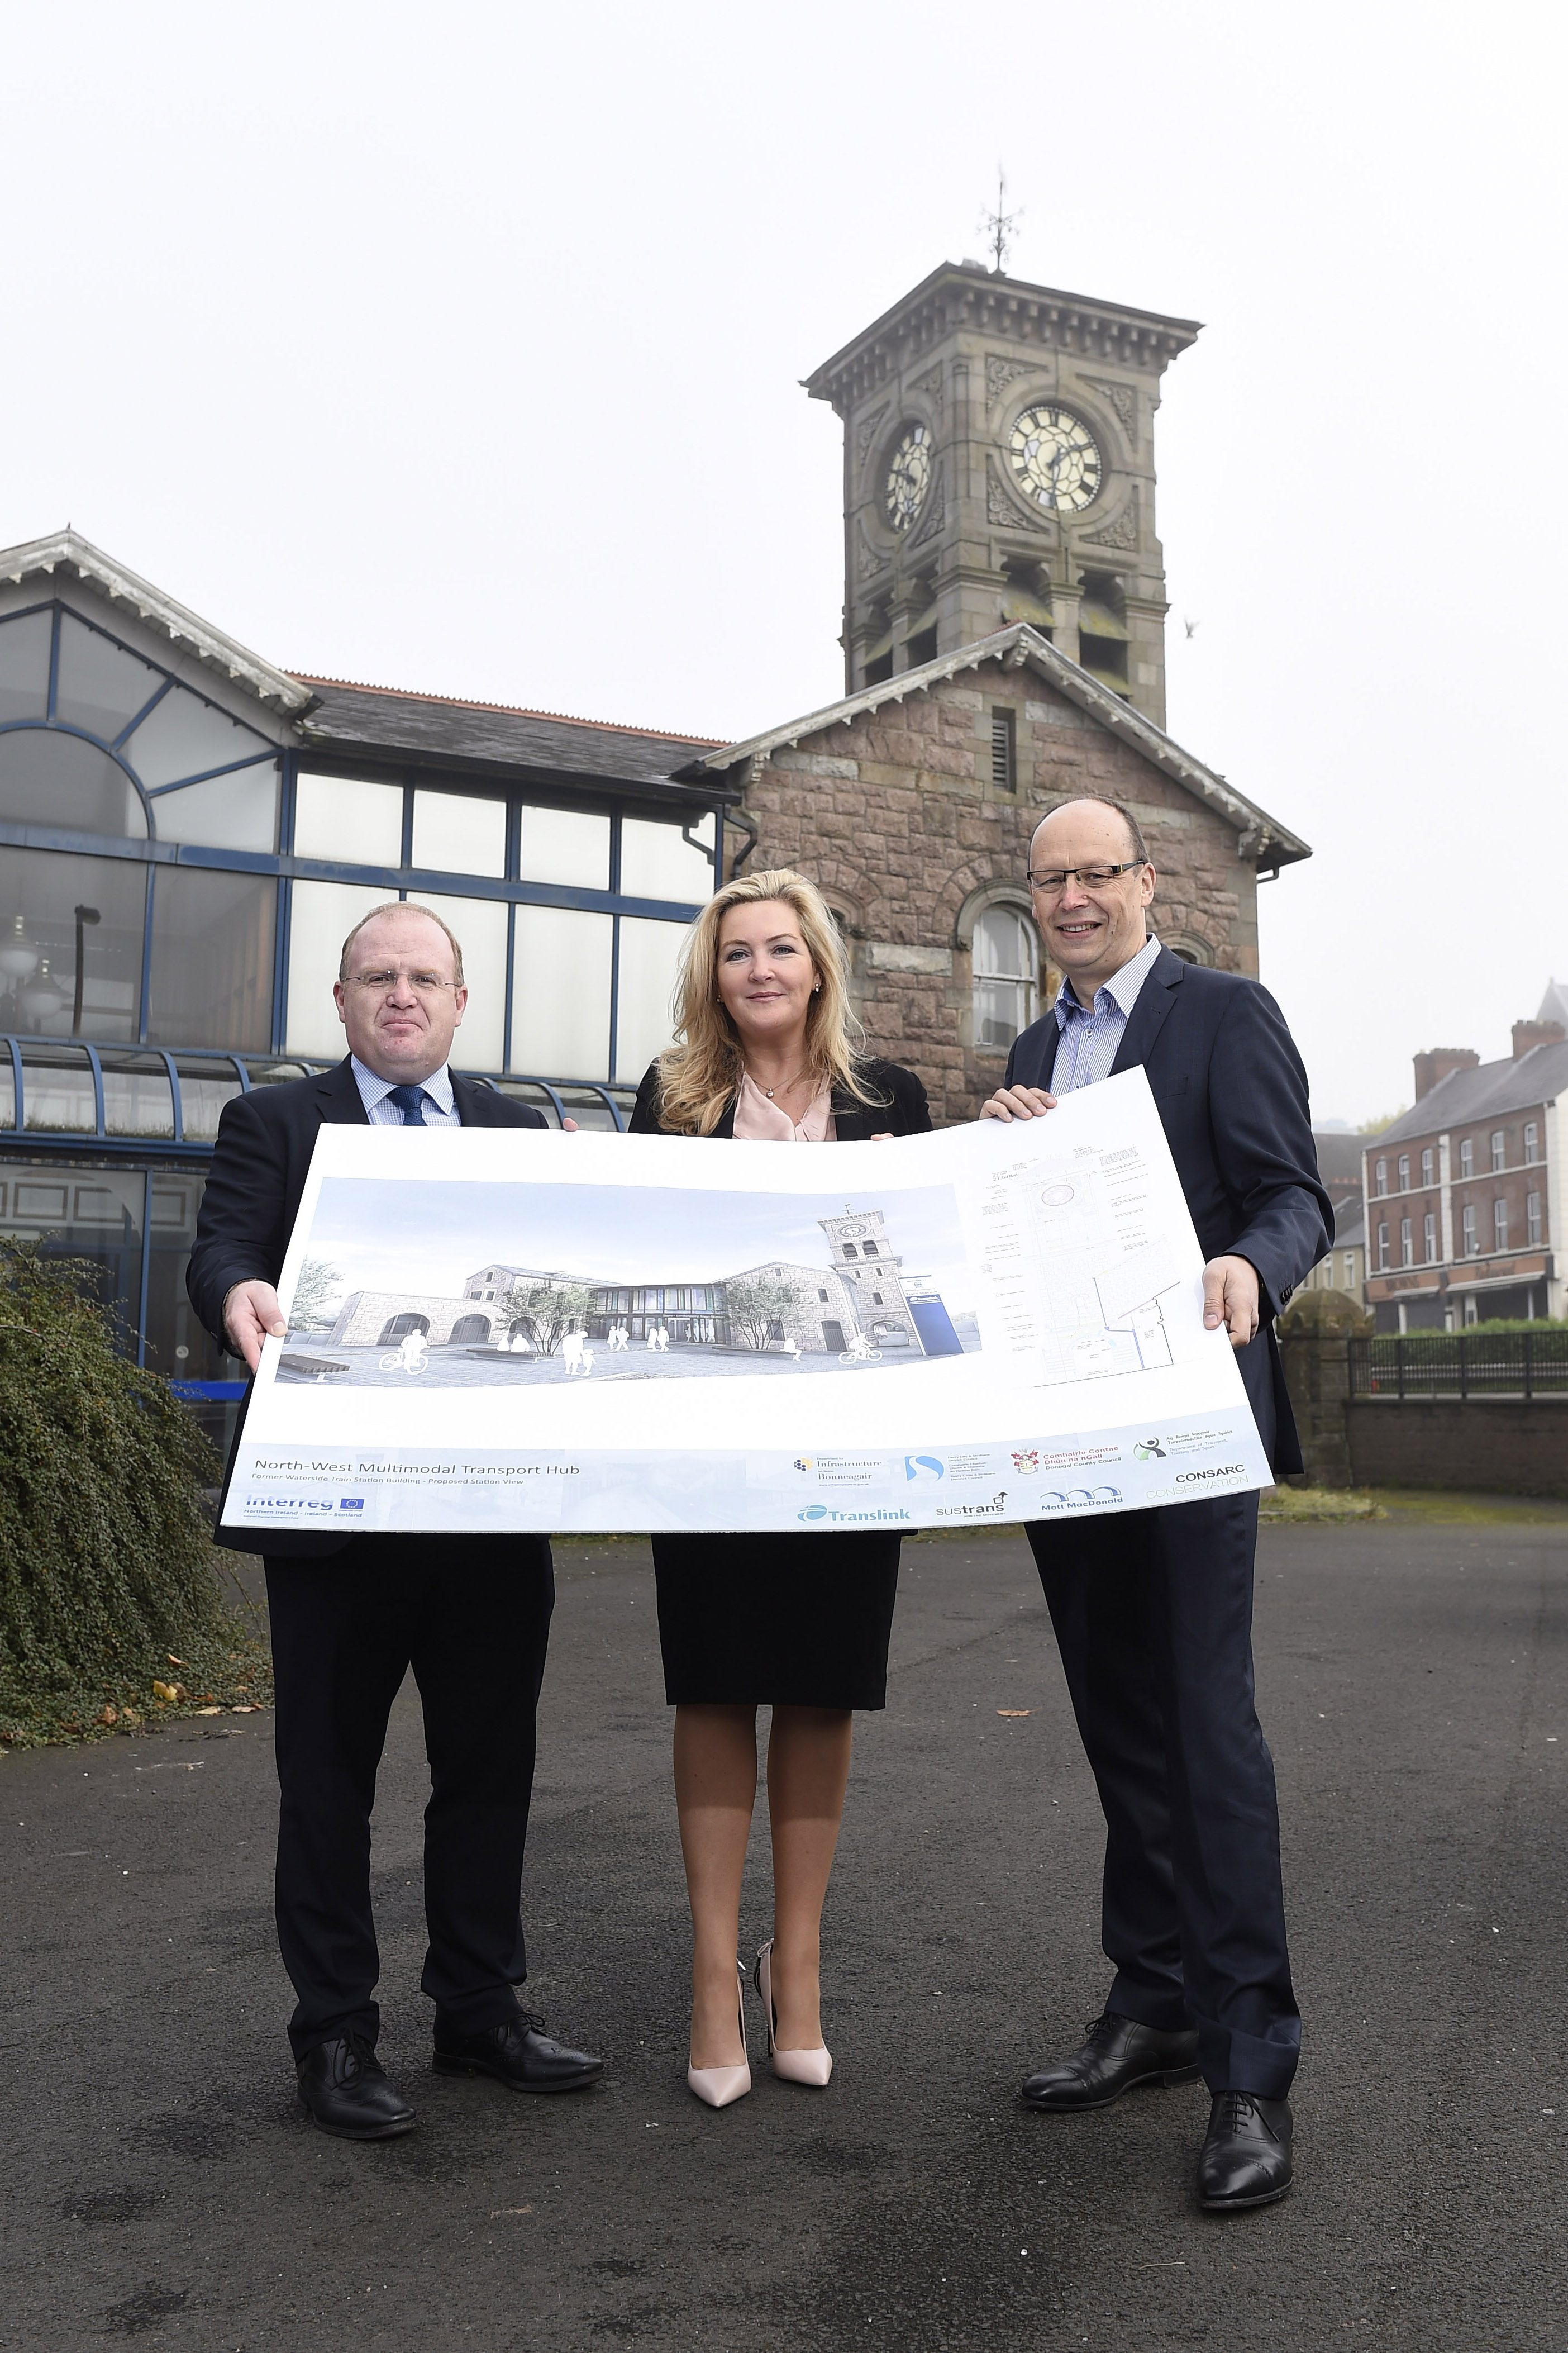 Pictured announcing €23.5 million worth of funding from the European Union's INTERREG VA Programme for an iconic new cross-border multi-modal transport hub for the North West are John Glass, Head of Projects with Translink, Gina McIntyre Chief Executive Officer with the Special EU Programmes Body (SEUPB) and Peter May, Permanent Secretary with the Department for Infrastructure.